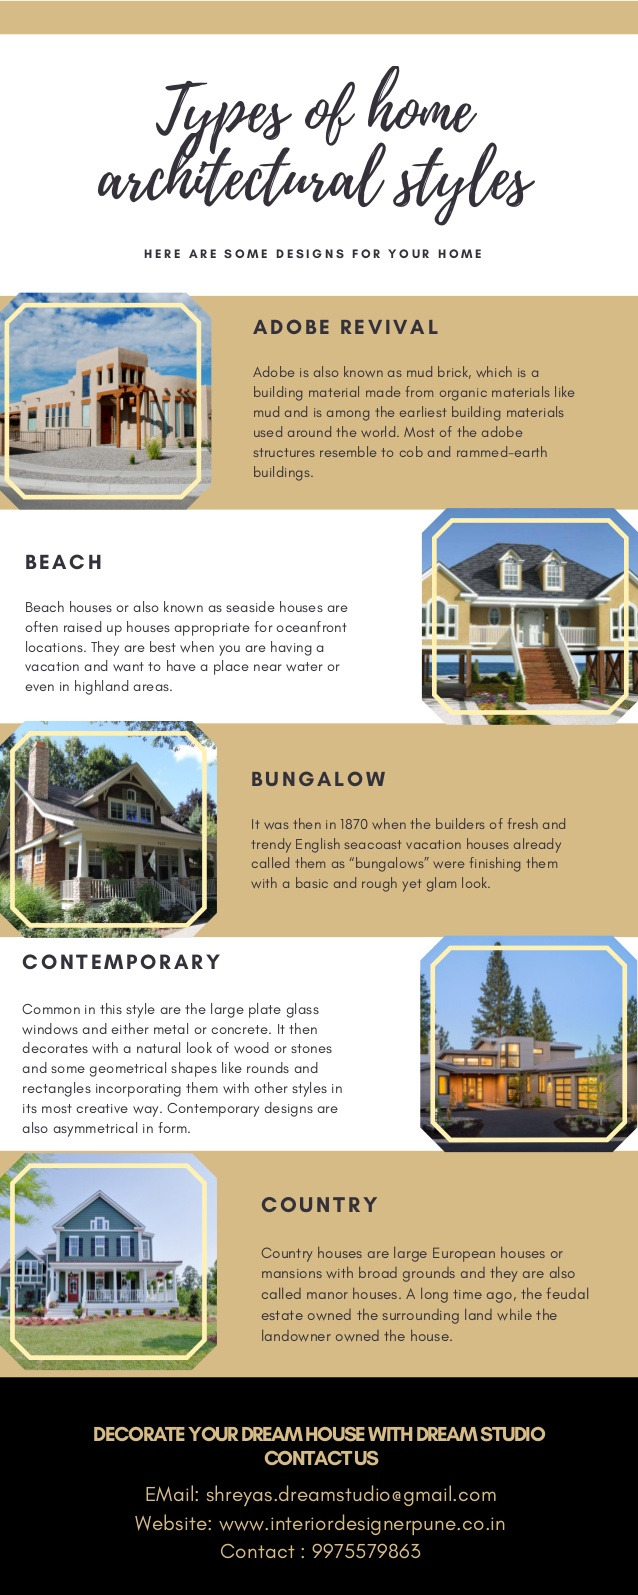 Home Architecture Styles Images 2020